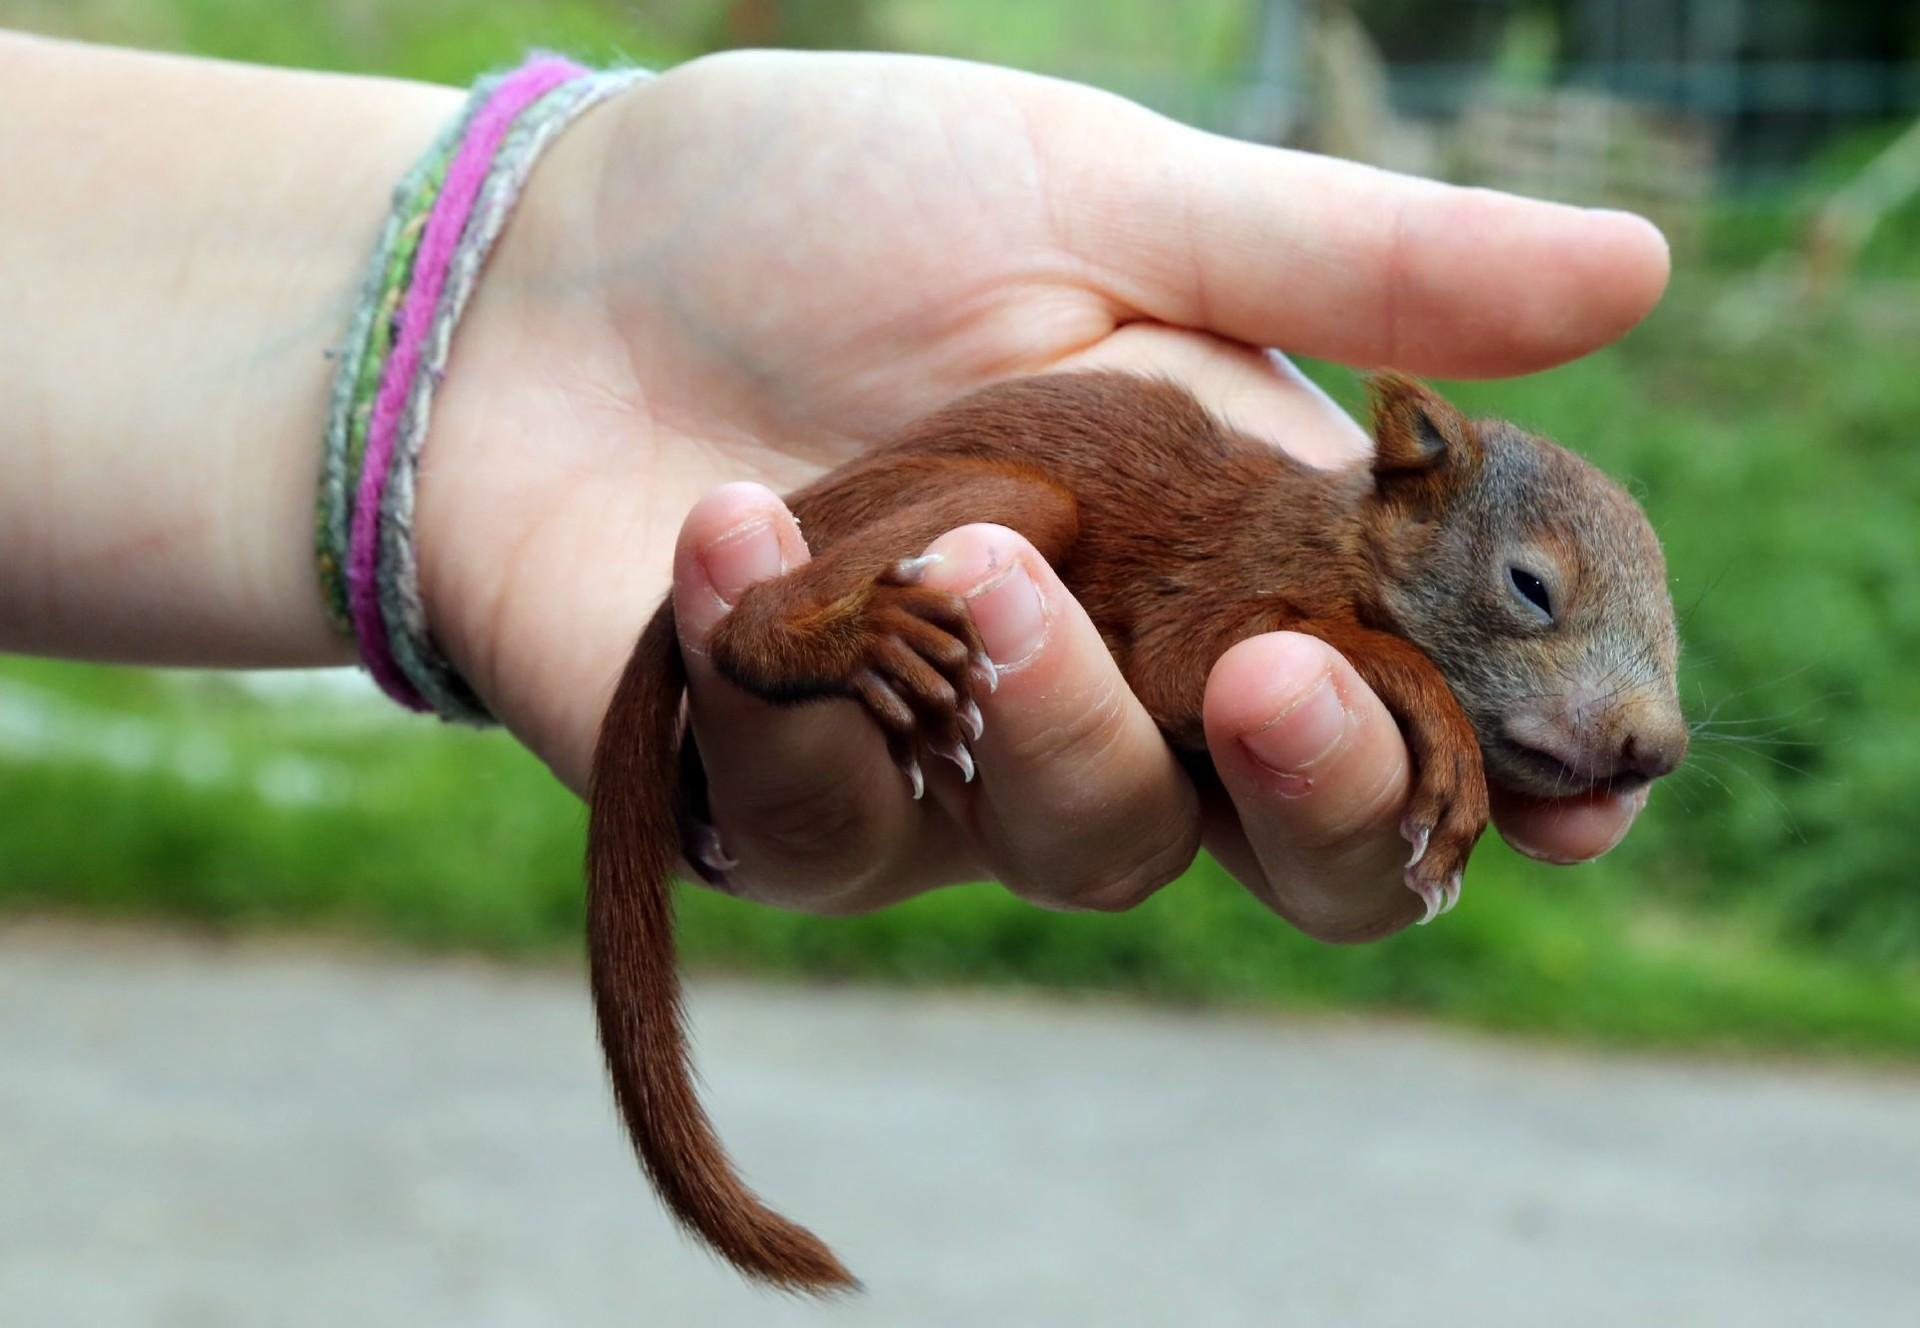 Baby red squirrel being held in hand